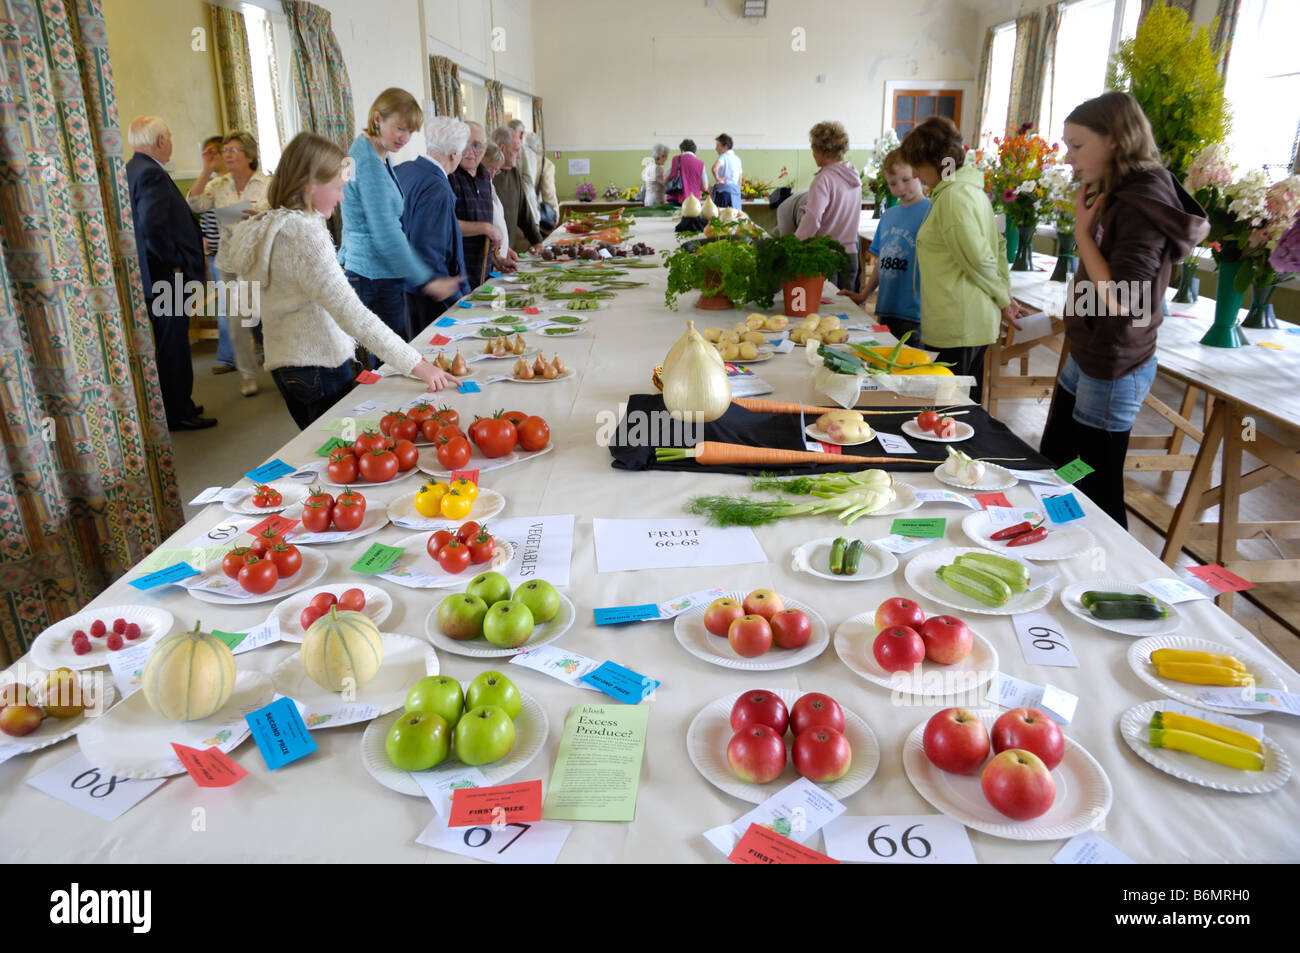 Display of fruit and vegetables at a village horticultural show, Gatehouse of Fleet, Dumfries & Galloway, Scotland Stock Photo